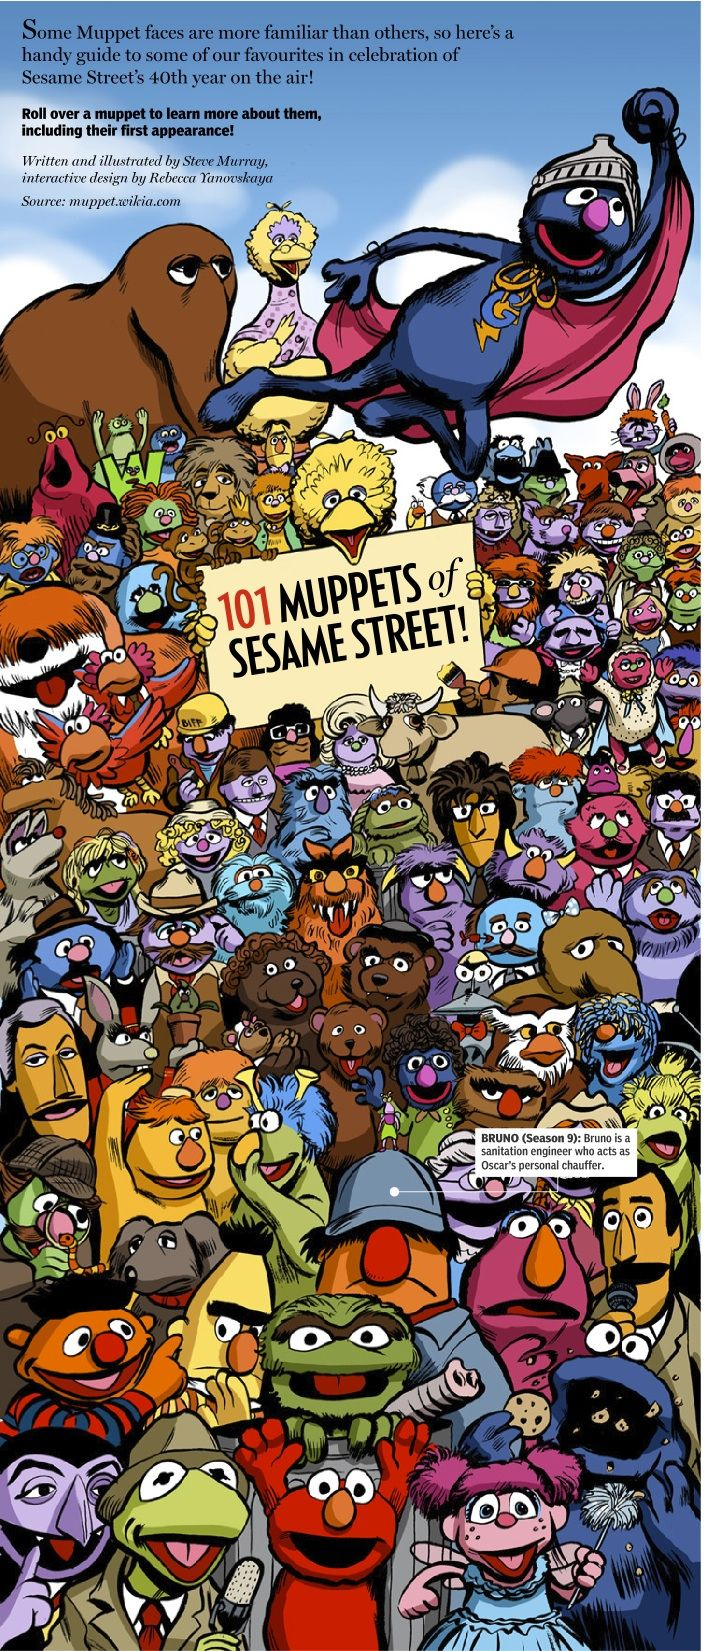 Go to... http://www.nationalpost.com/arts/muppets_bracket/index.html ...and simply roll over a muppet in the infographic to see when they first appeared on the show, and a little bit about its character. Did you know that Oscar originally had orange fur? Did you know that the cookie monster was originally named Sid?